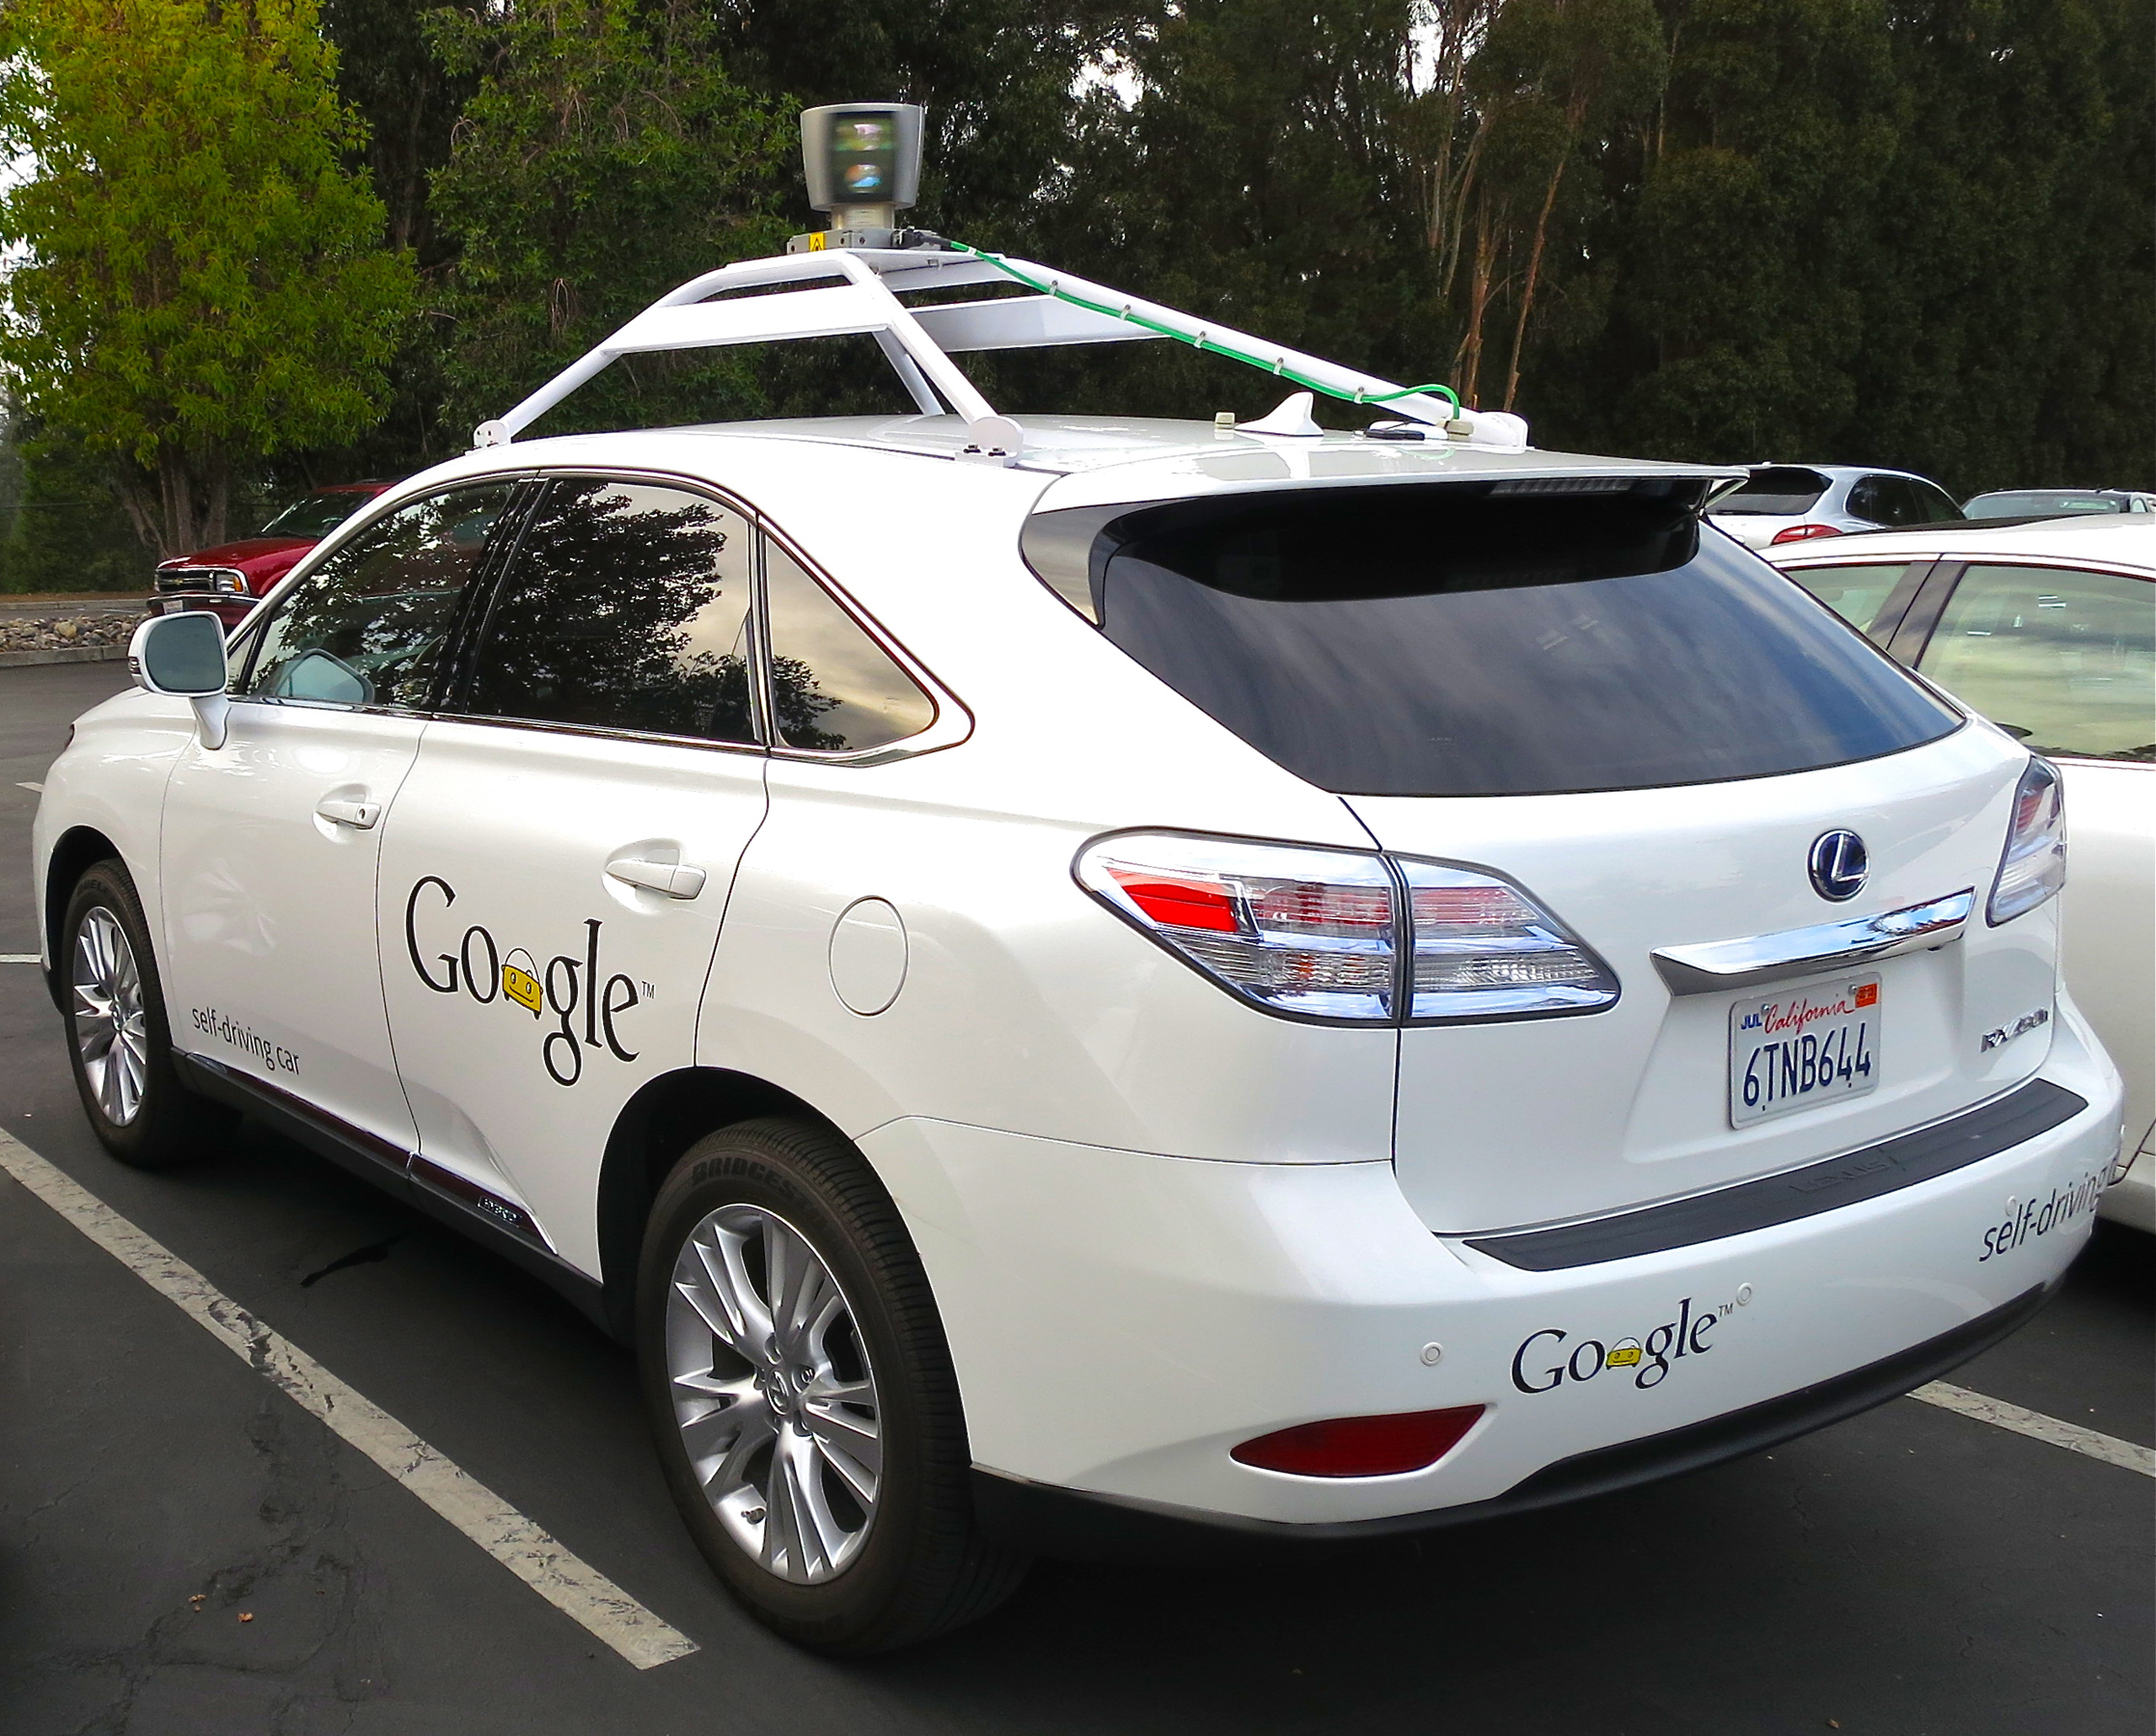 """""""Google's Lexus RX 450h Self-Driving Car"""" by Driving_Google_Self-Driving_Car.jpg: Steve Jurvetsonderivative work: Mariordo - This file was derived fromDriving Google Self-Driving Car.jpg:. Licensed under CC BY 2.0 via Wikimedia Commons - https://commons.wikimedia.org/wiki/File:Google%27s_Lexus_RX_450h_Self-Driving_Car.jpg#/media/File:Google%27s_Lexus_RX_450h_Self-Driving_Car.jpg"""